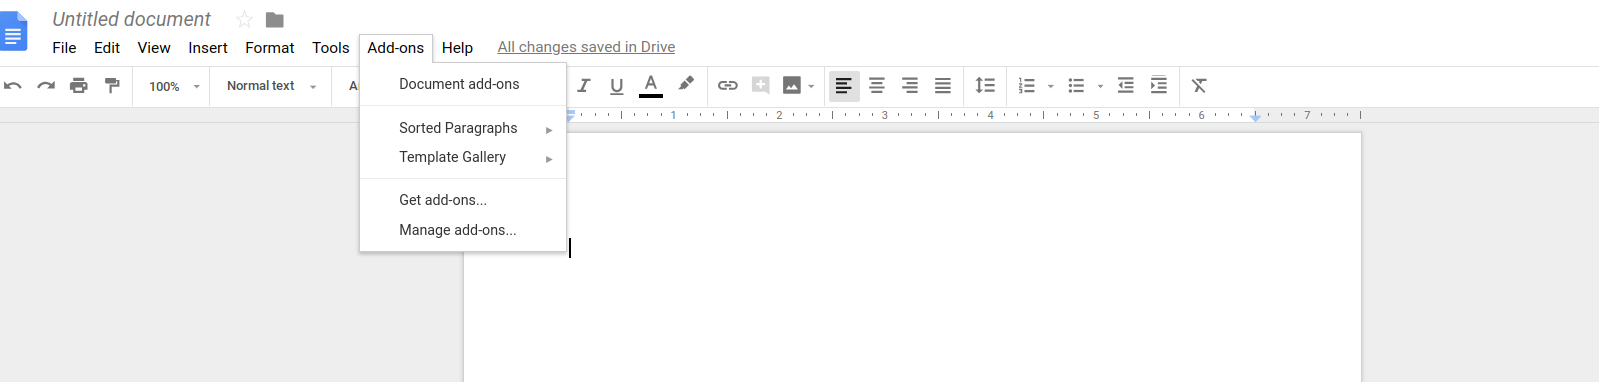 Installed Add-ons in Google Docs | DeviceDaily.com